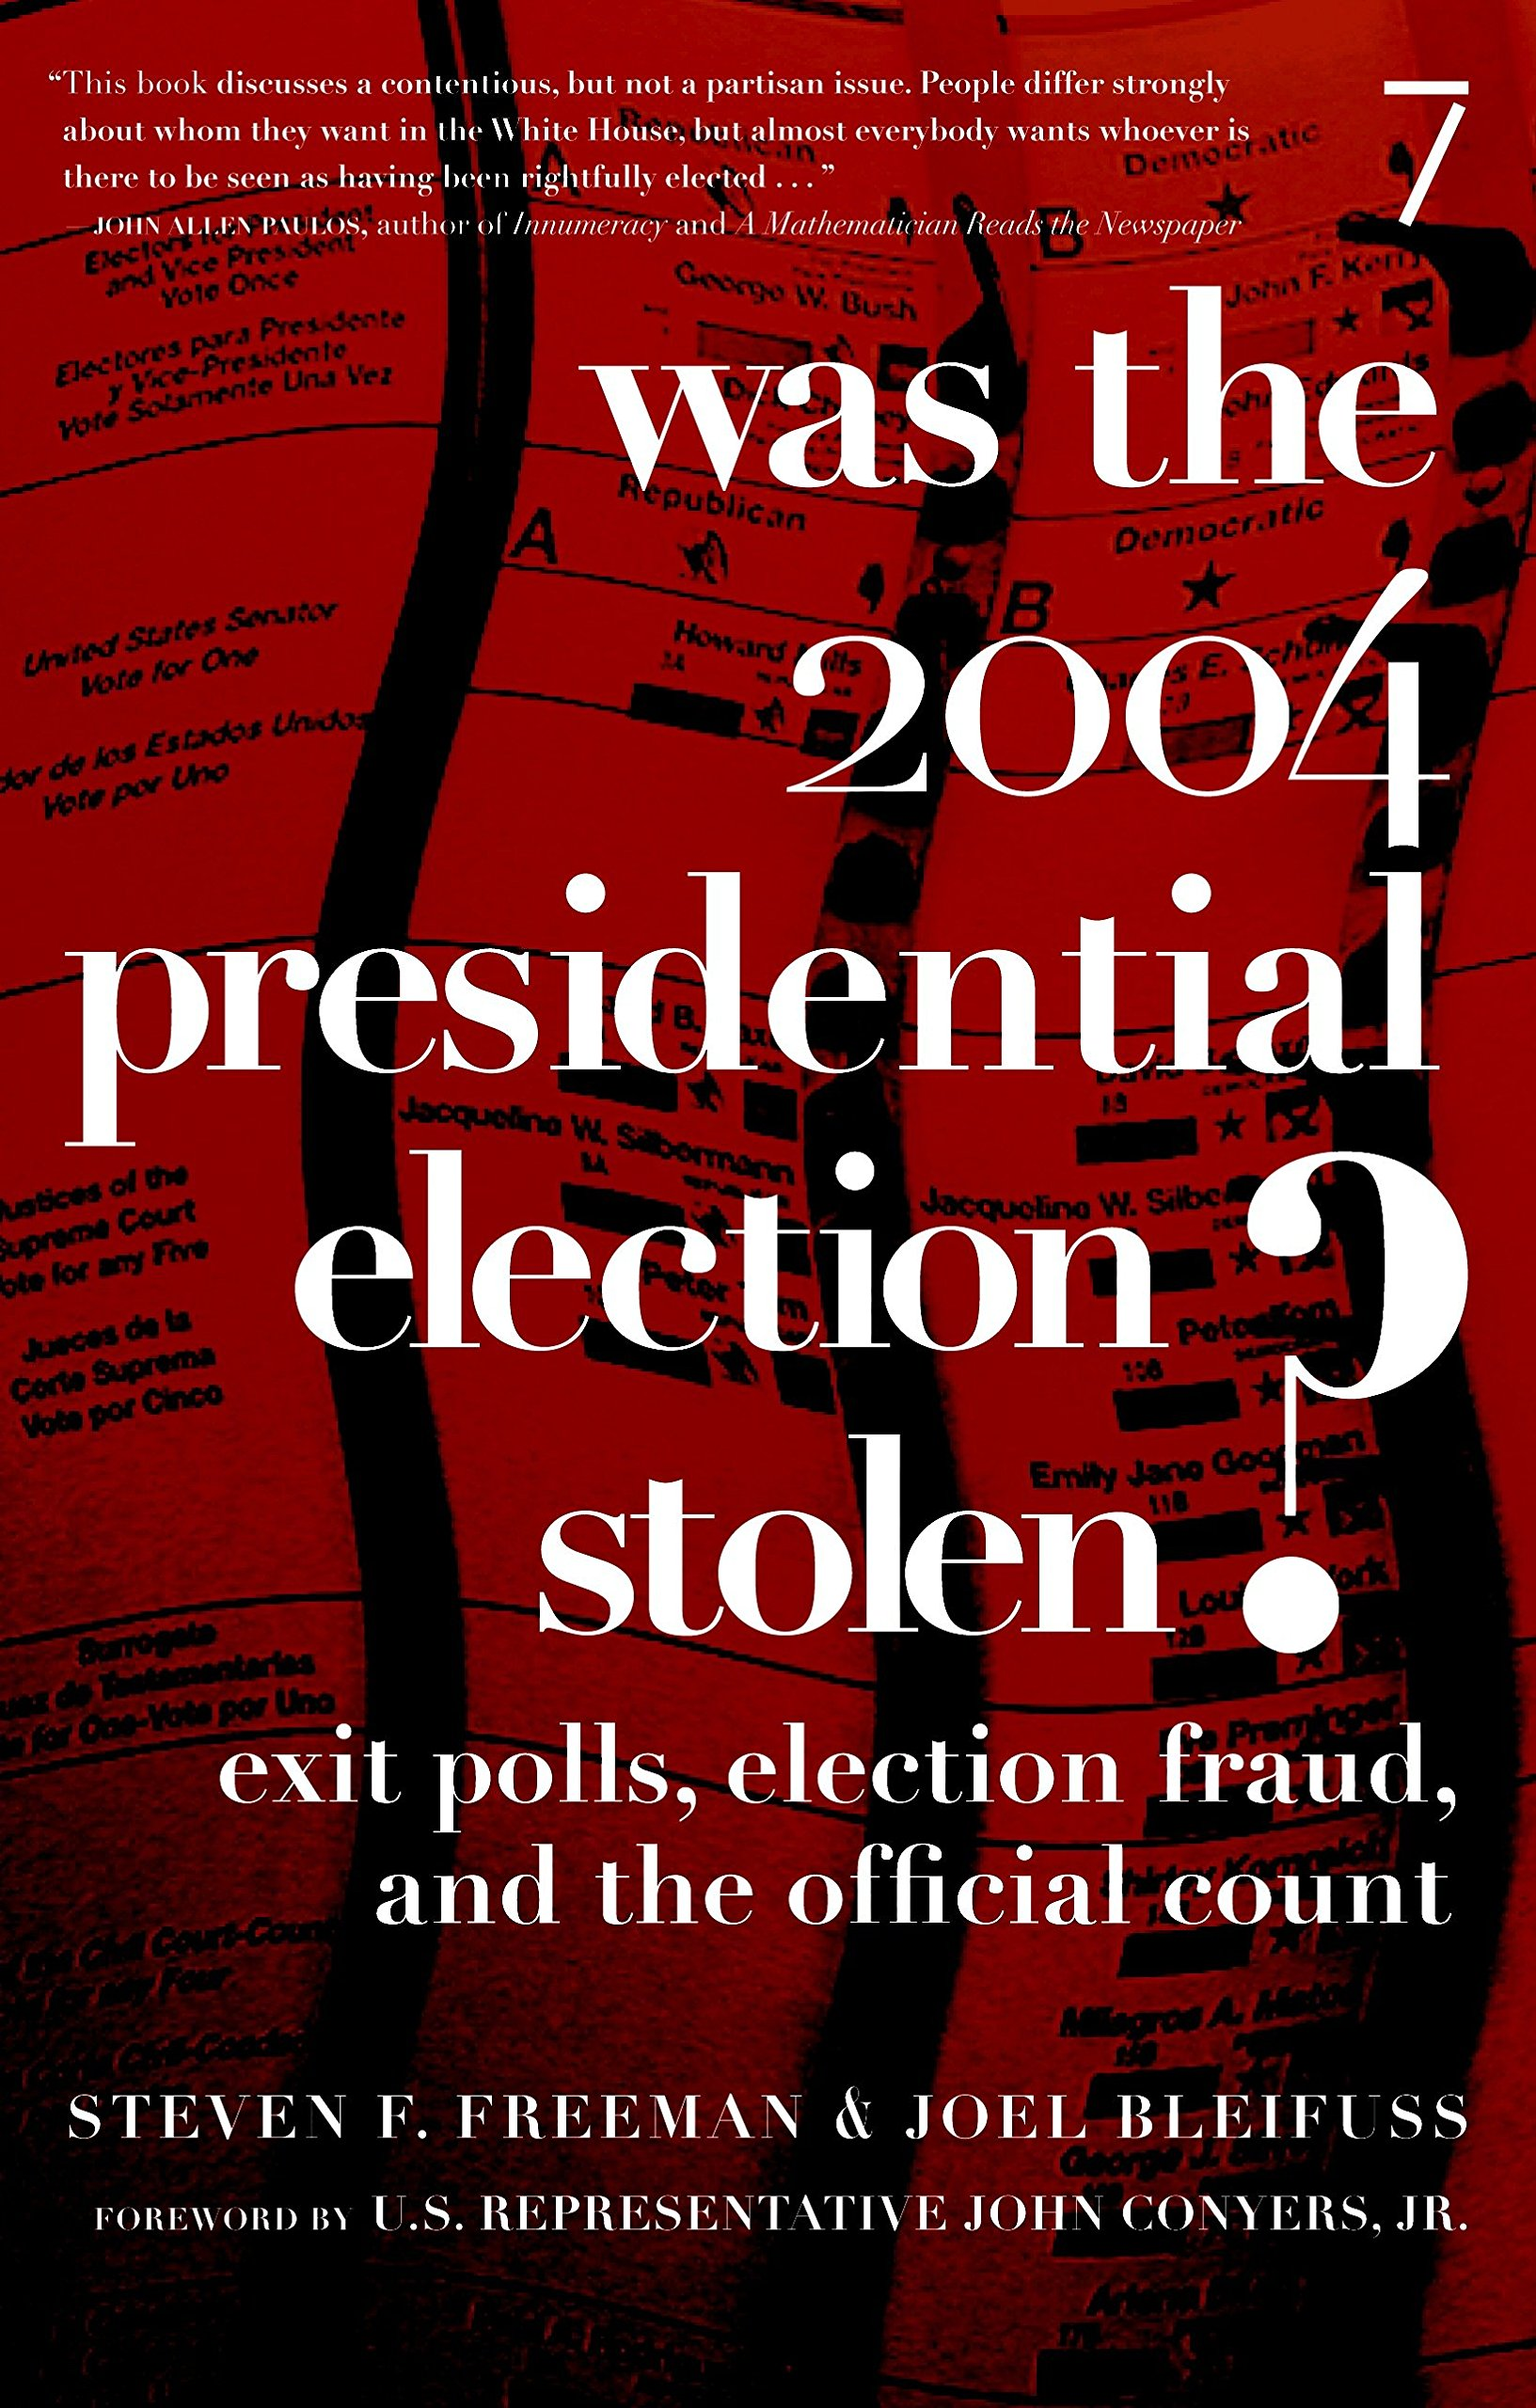 Was the 2004 Presidential Election Stolen?: Exit Polls, Election Fraud, and the Official Count Paperback – June 6, 2006 Steve Freeman Joel Bleifuss Seven Stories Press 1583226877